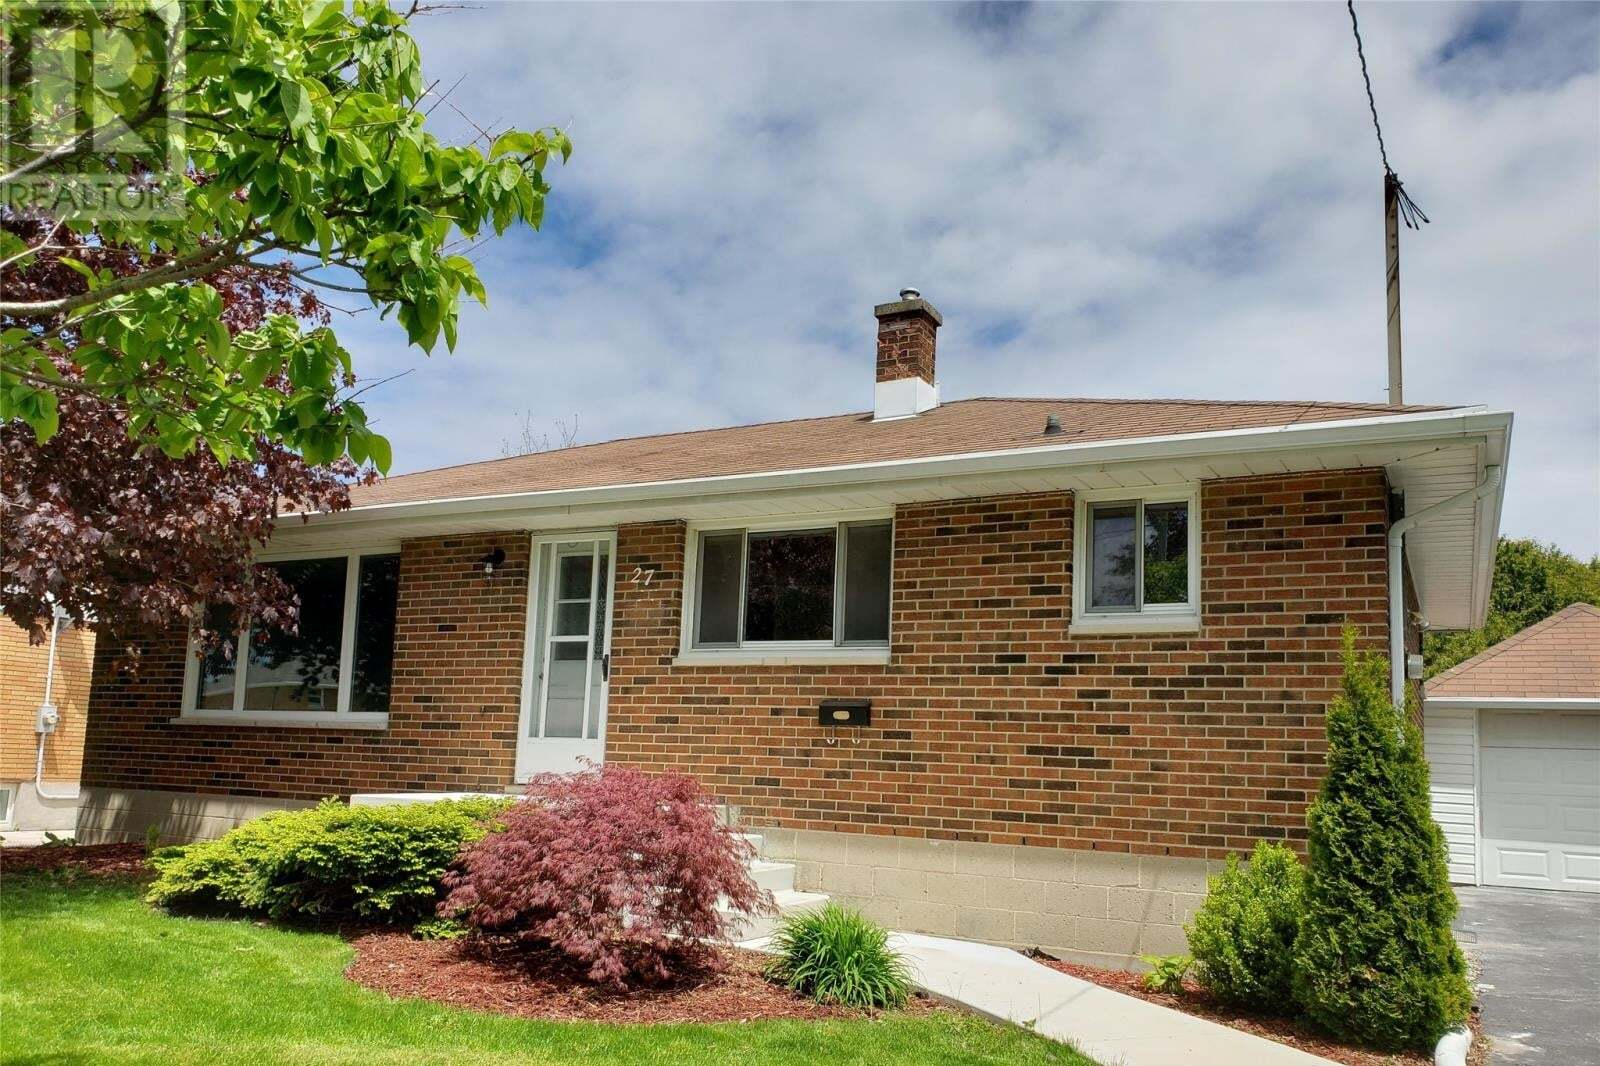 House for sale at 27 Peter Street  Chatham Ontario - MLS: 20005613